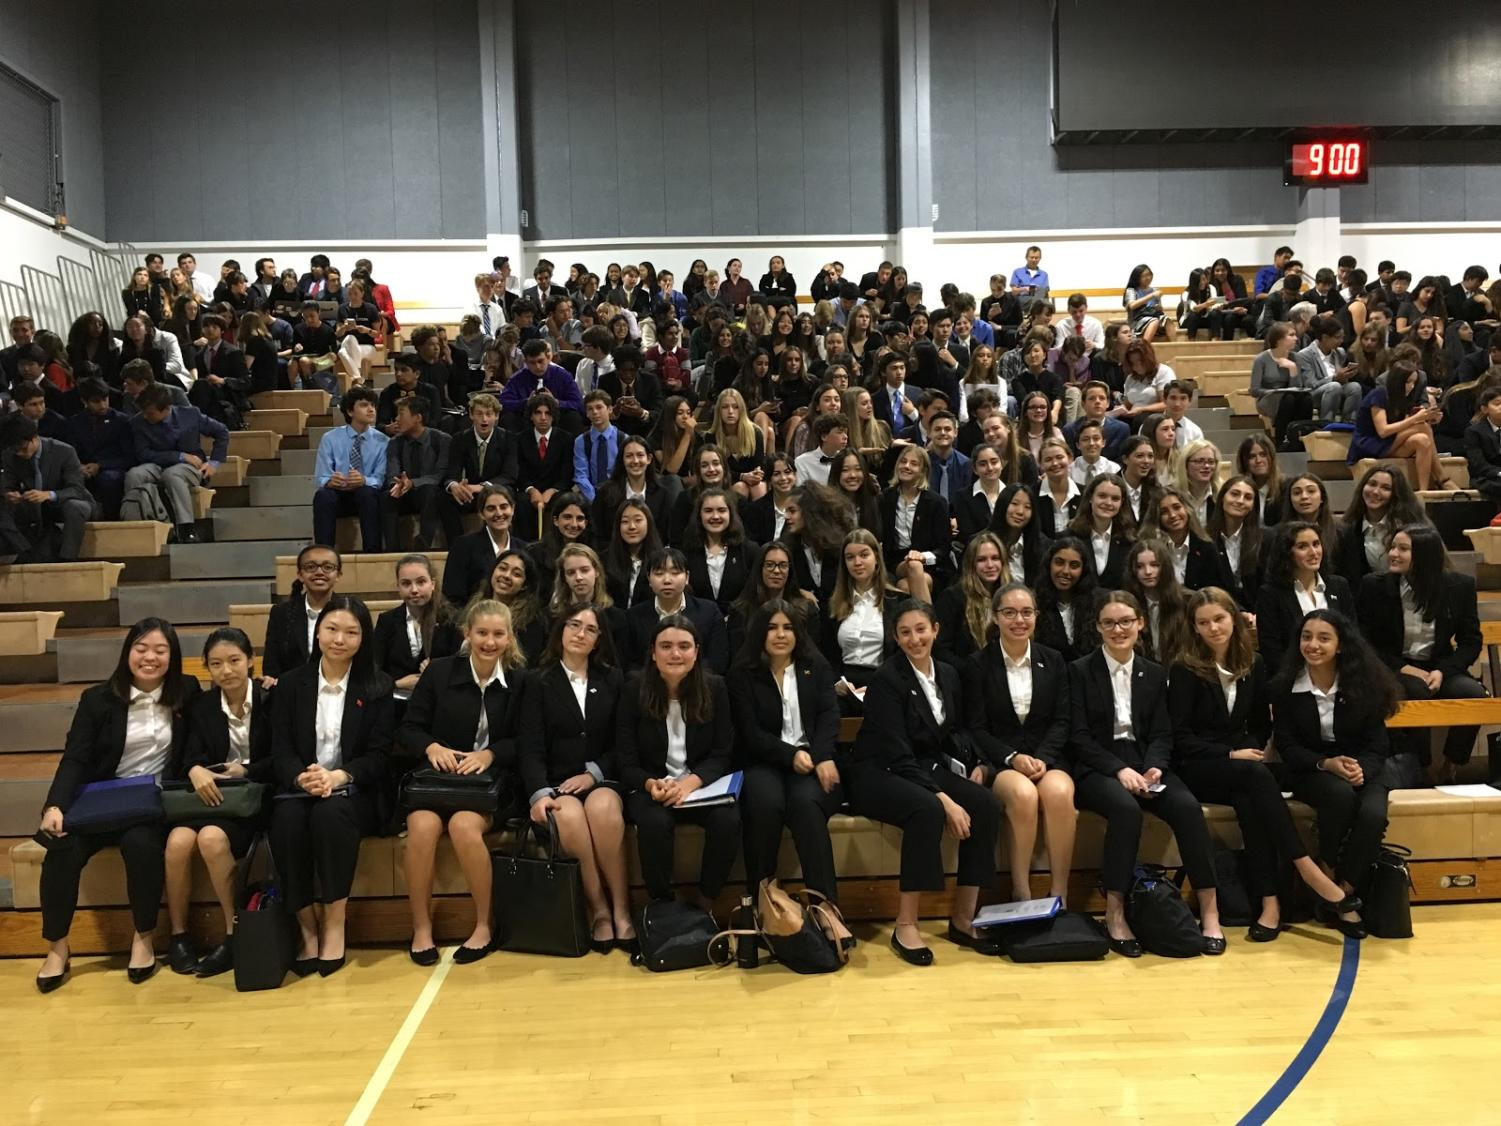 Marymount High School students that participated in Santa Margarita's annual Model United Nations conference sitting together in the gym before the Opening Ceremony begins.